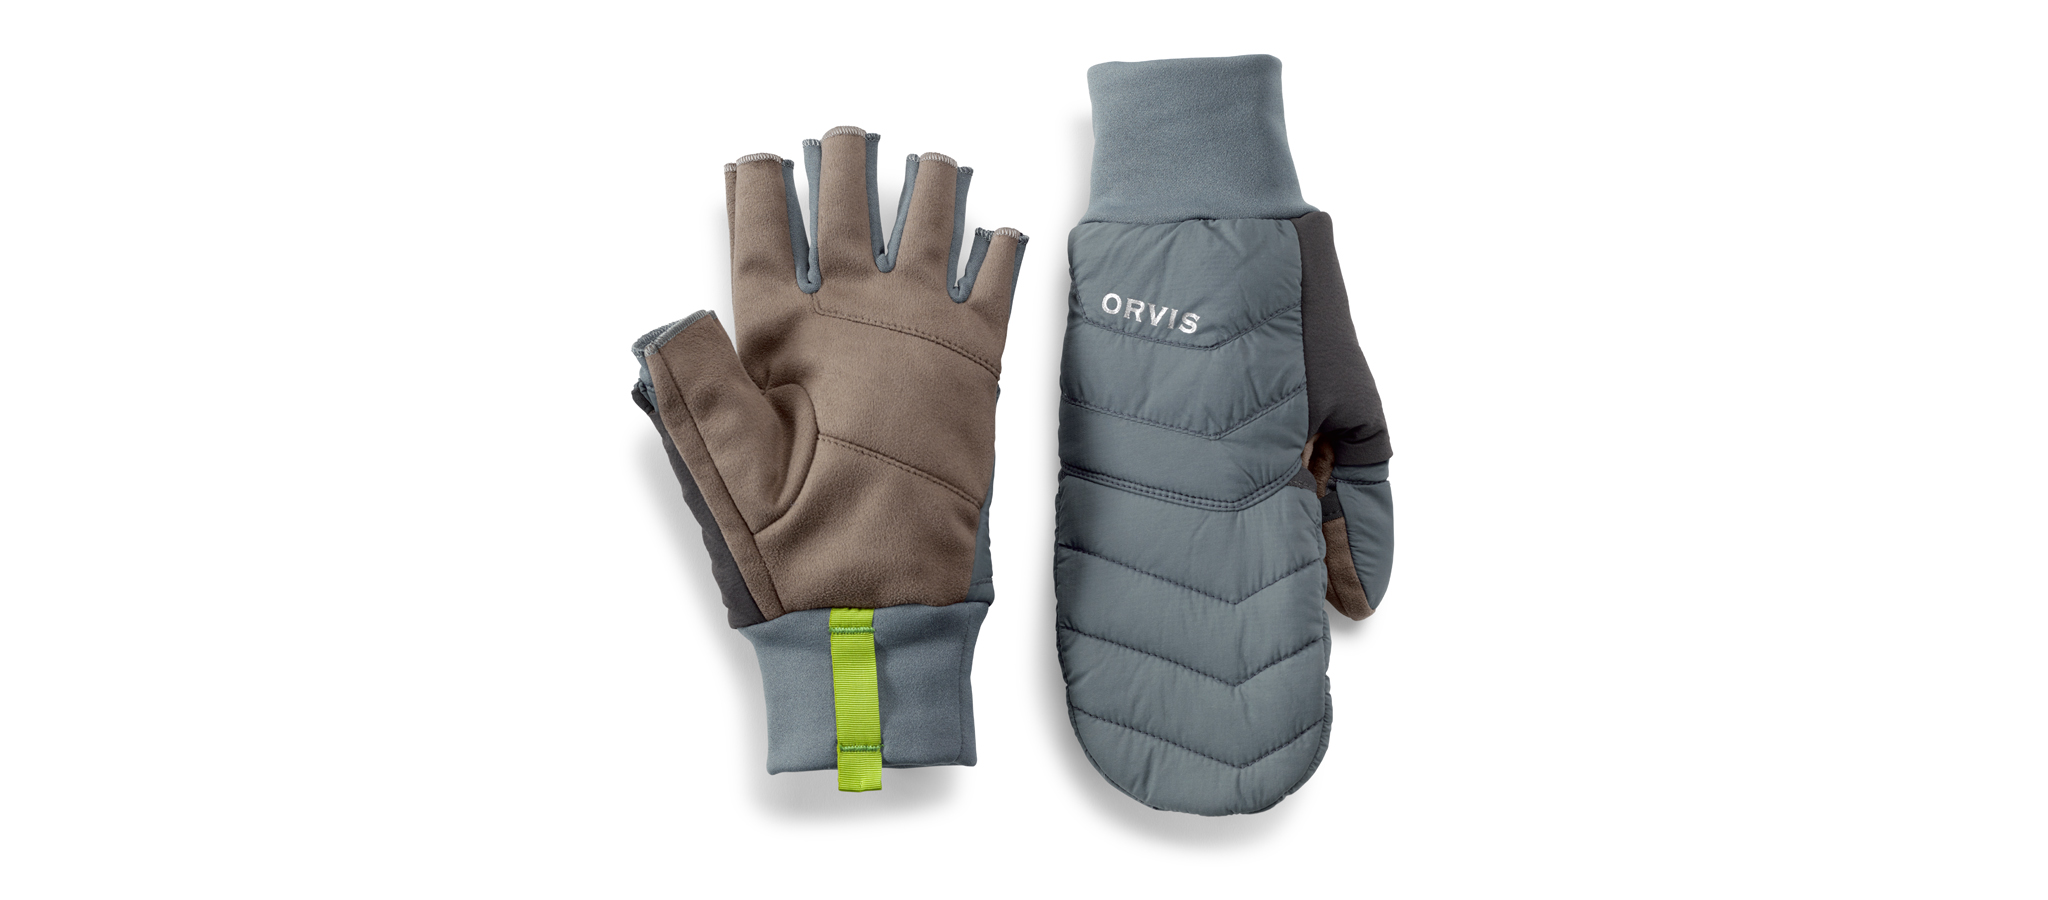 ORVIS-PRO-Insulated-Mitts-Handschuhe